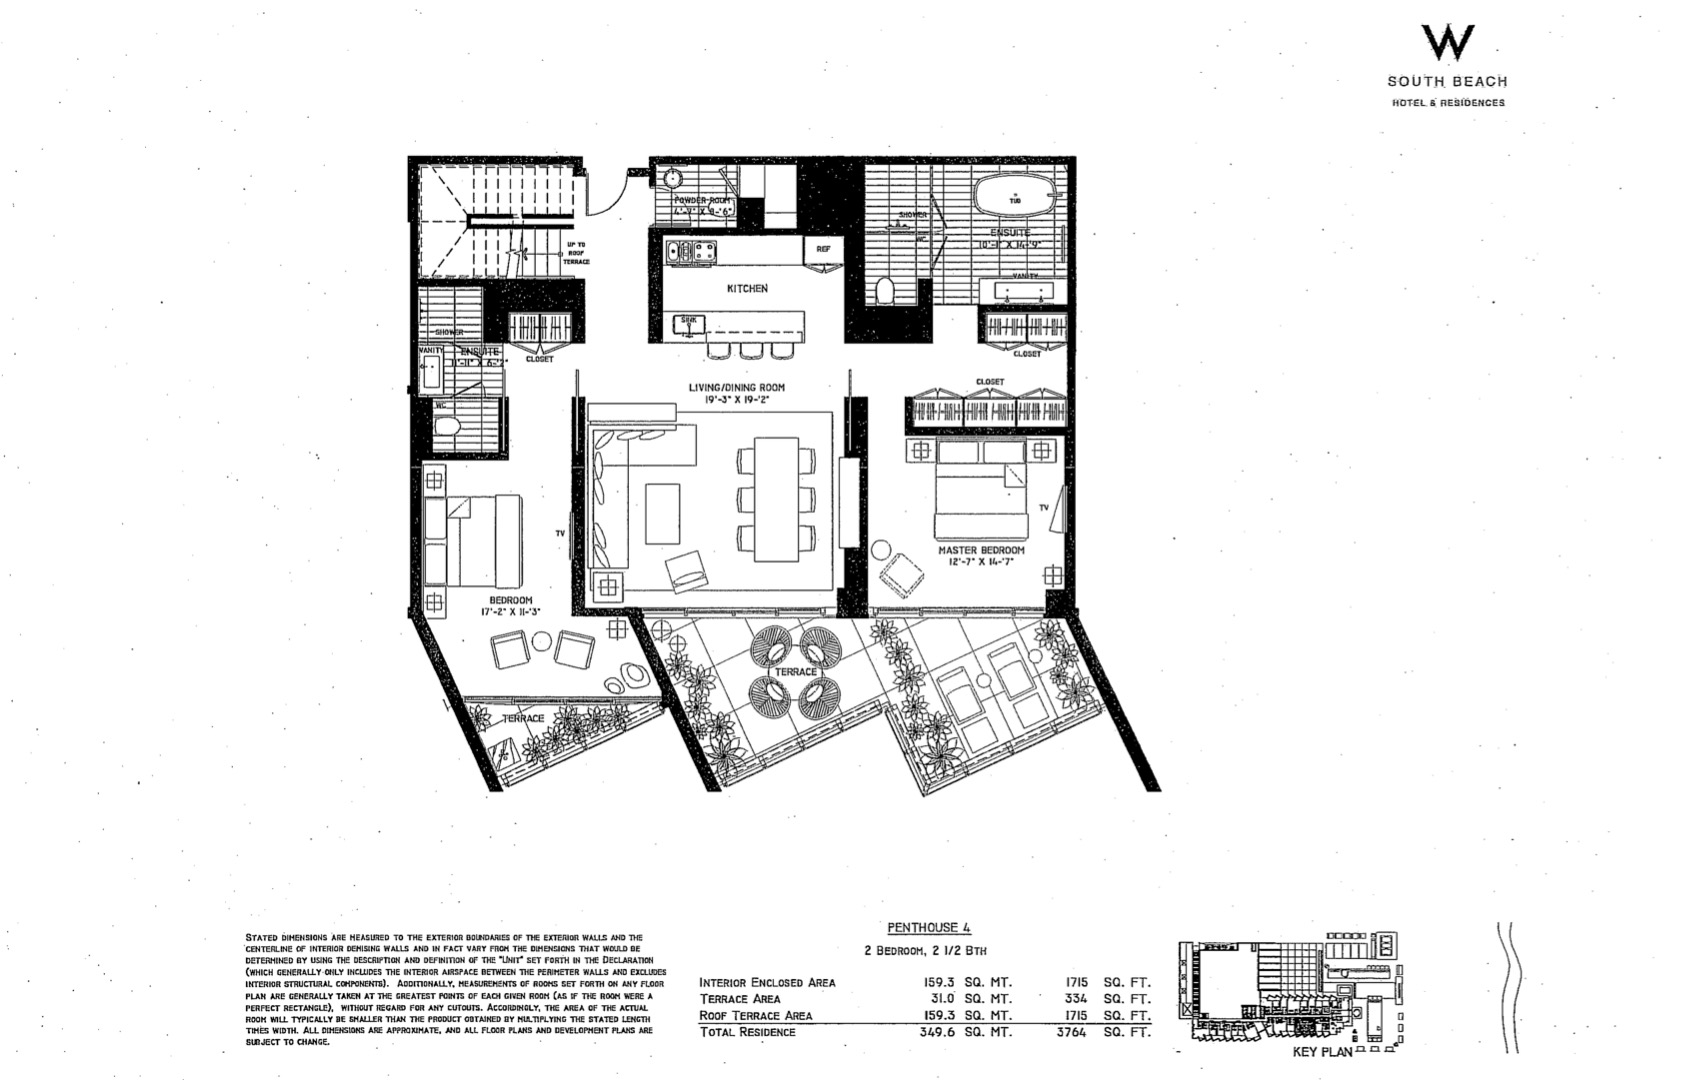 Floor plan image W South Beach Penthouse 4 - 2/2/1  - 3764 sqft image